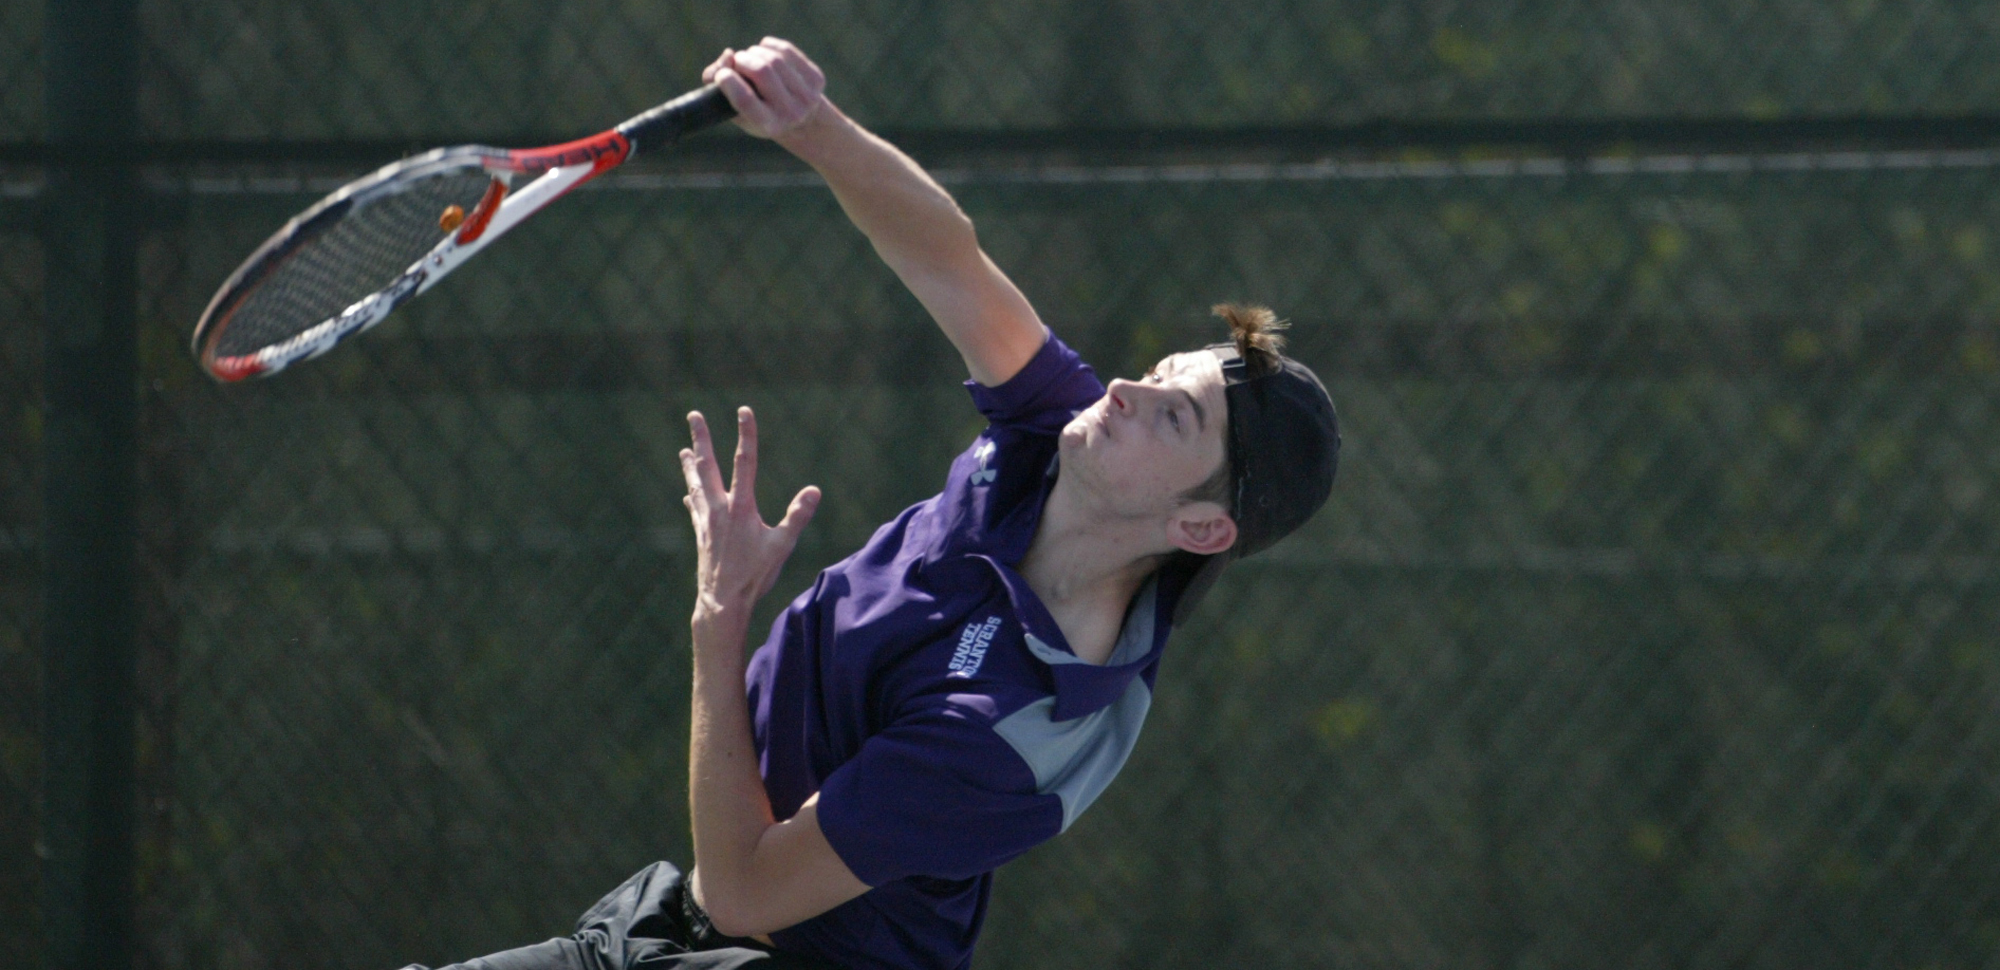 Senior Brian Harkins was one of four Royals with wins in both singles and doubles on Saturday at Messiah.